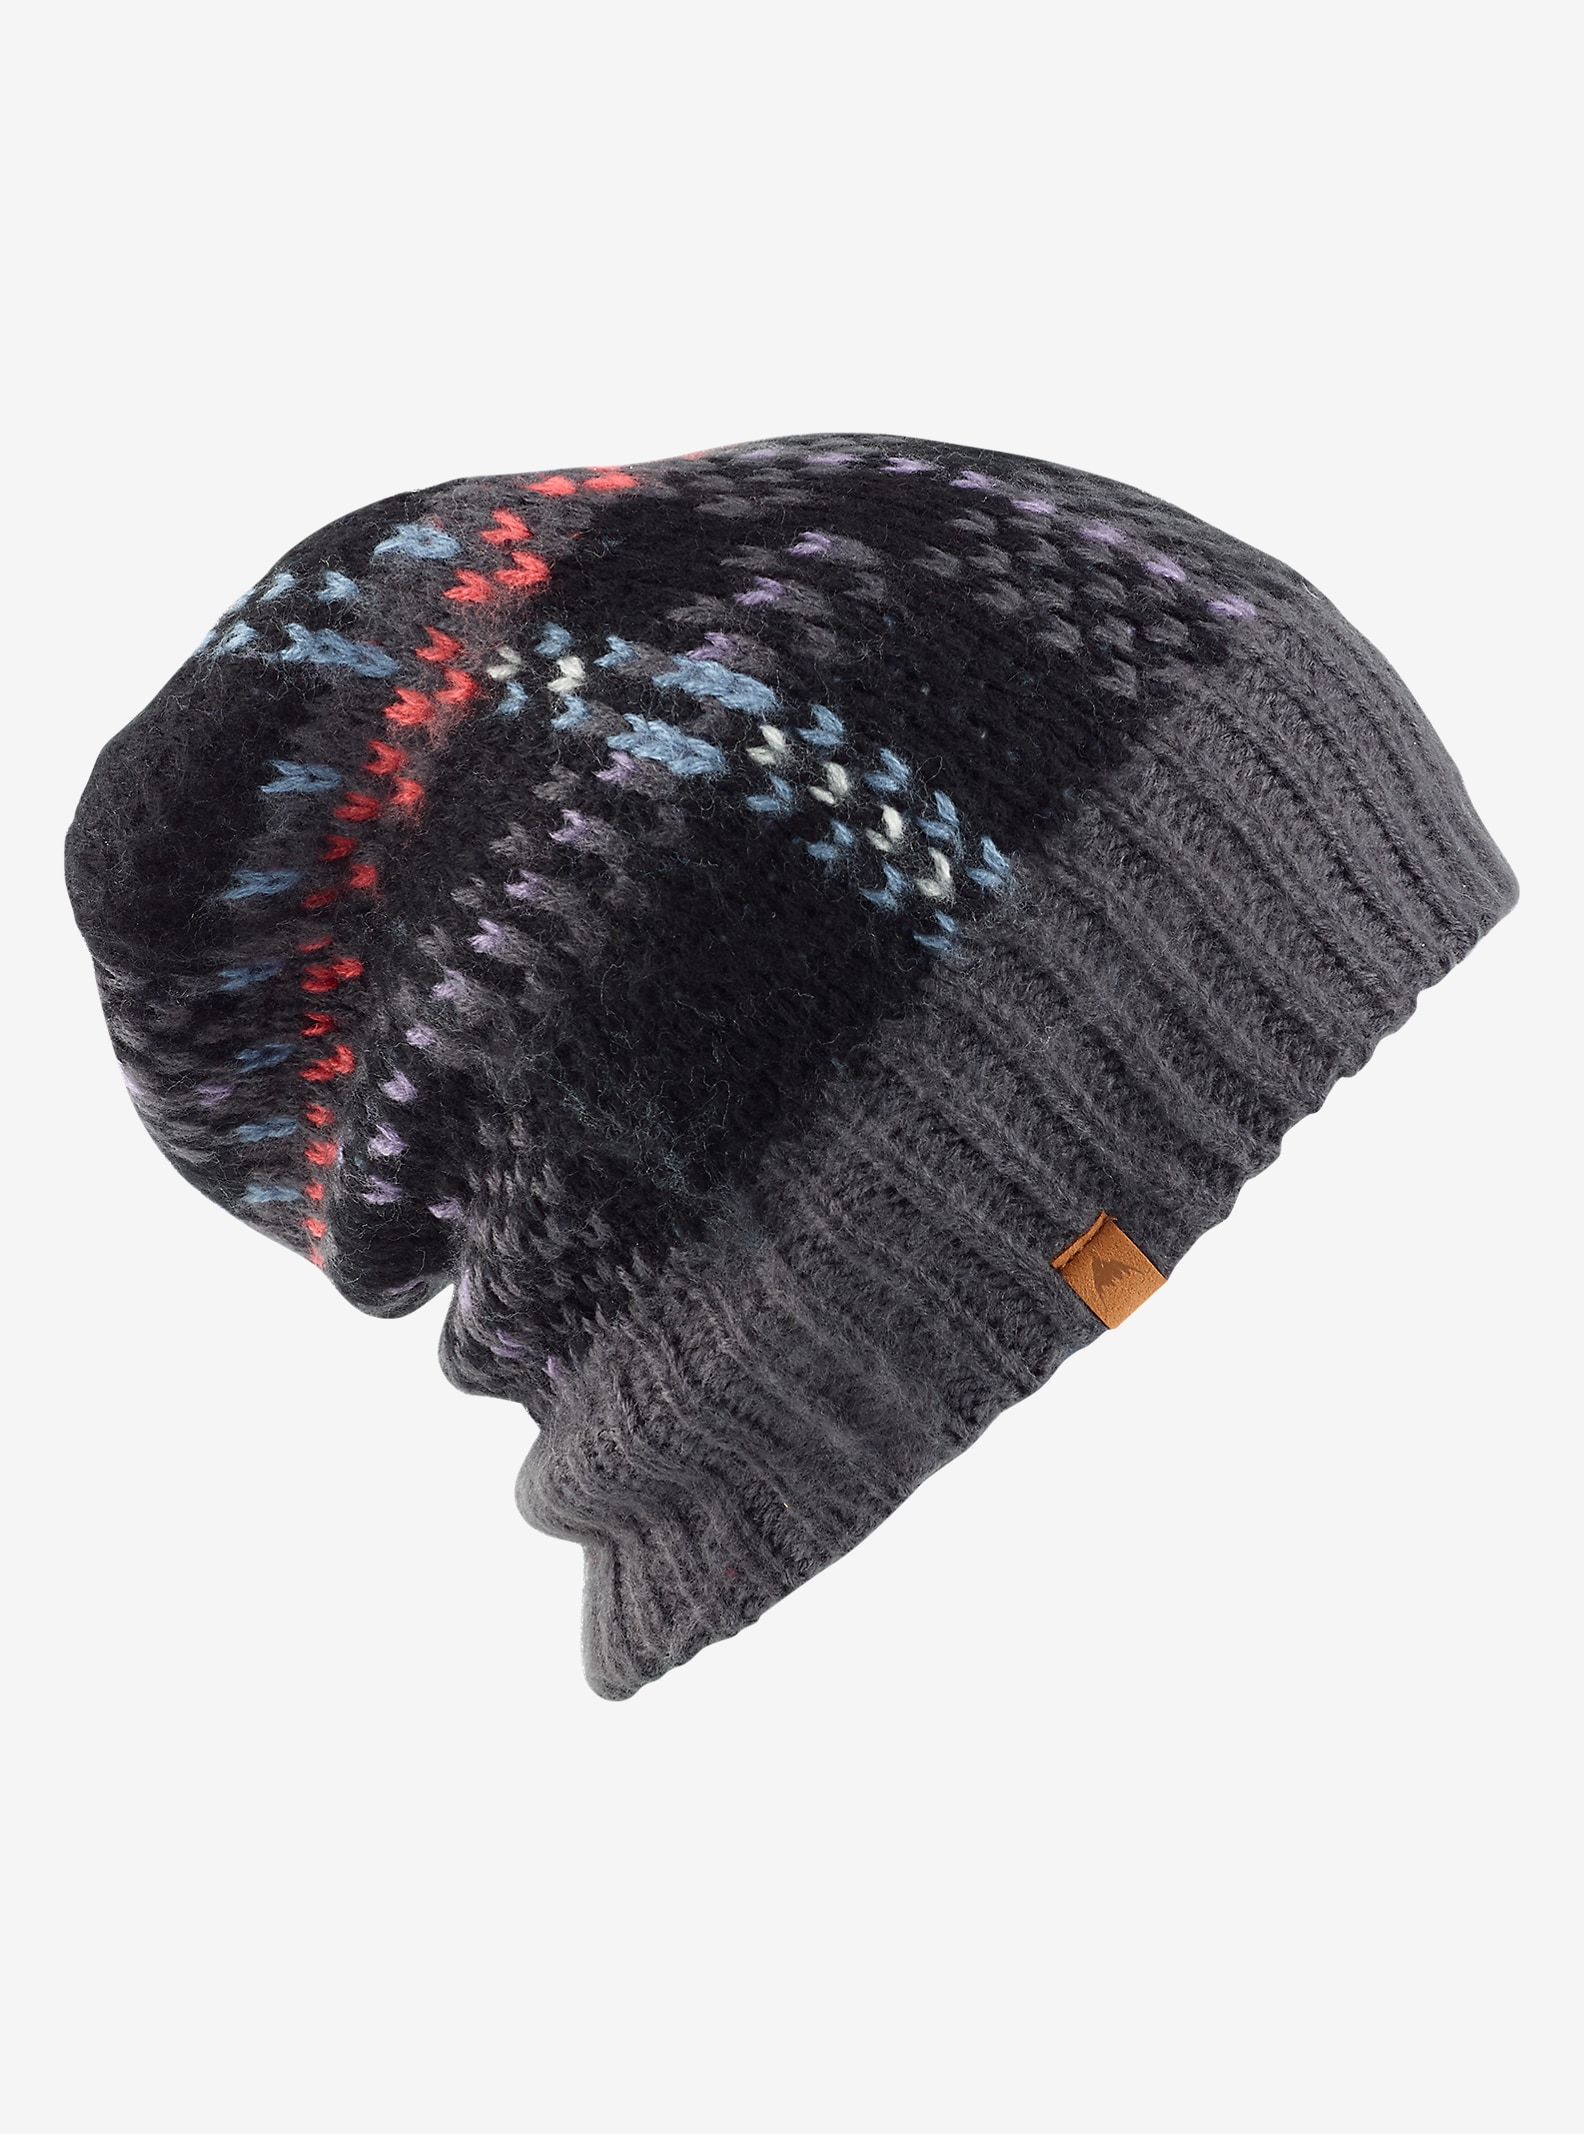 Burton Elle Beanie shown in Faded